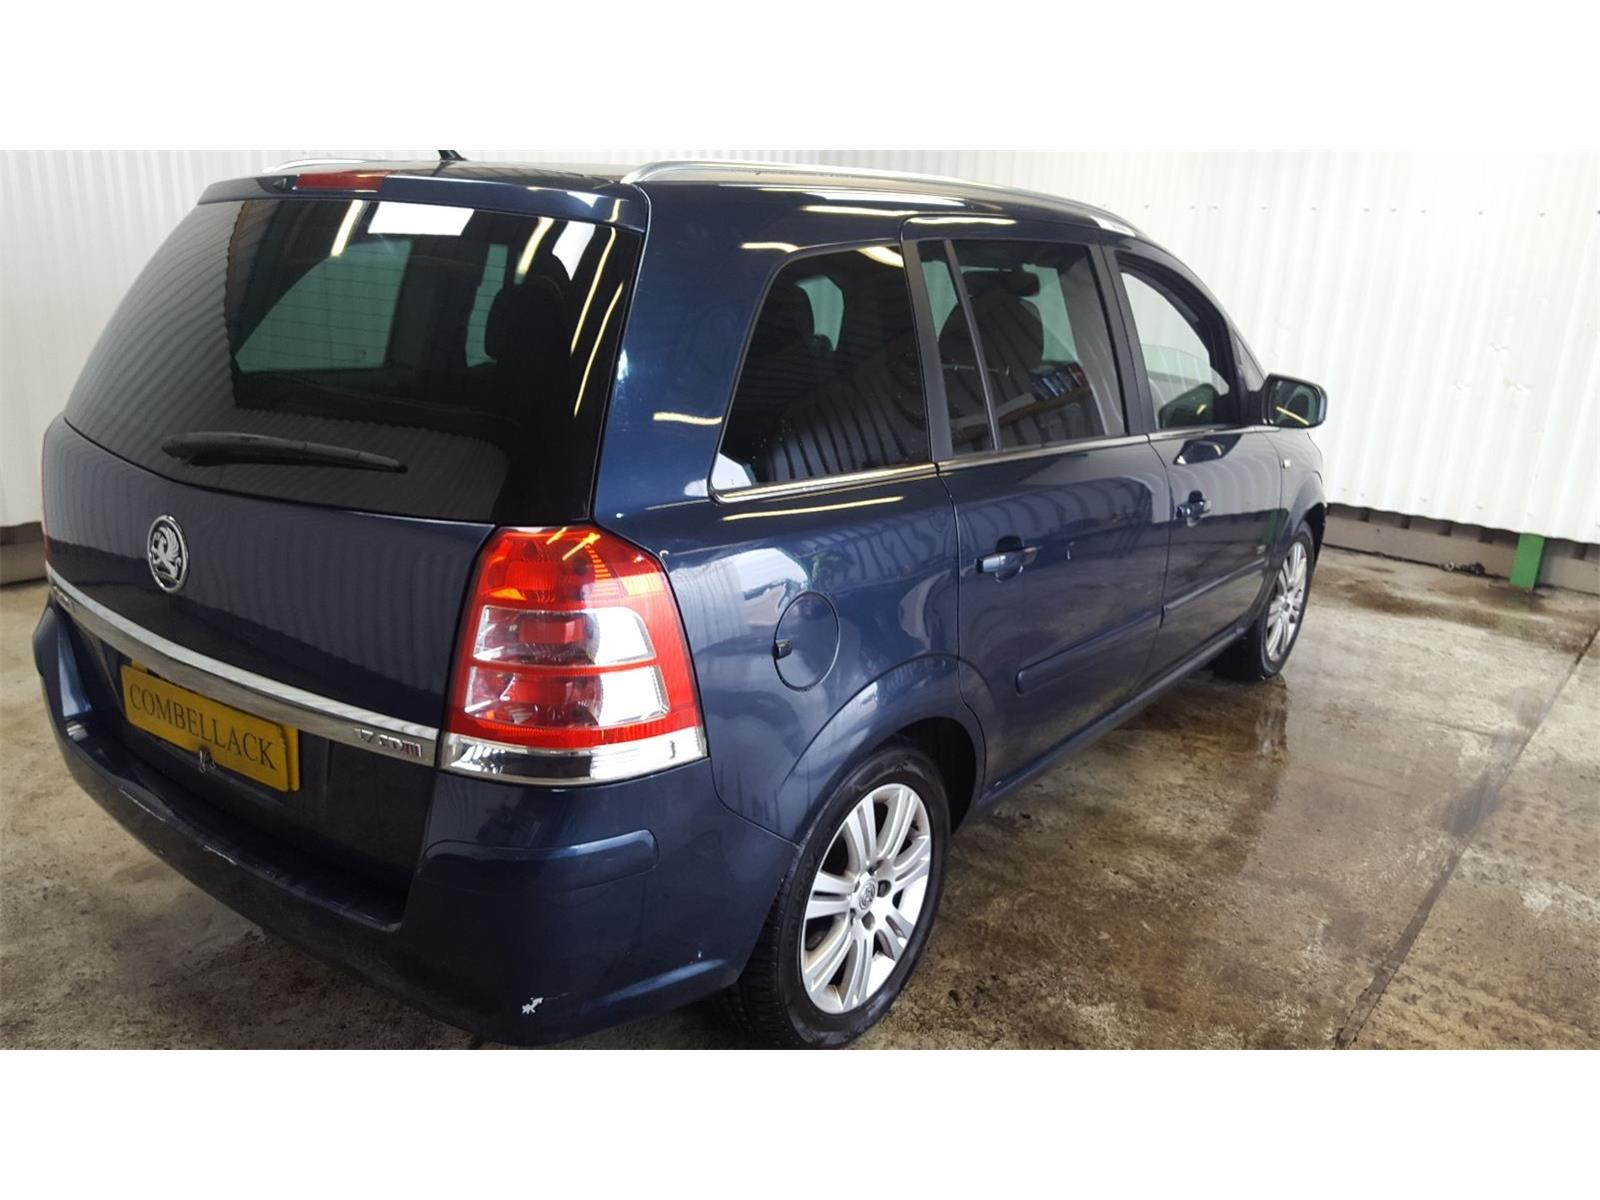 Vauxhall Zafira 2005 To 2010 Design Cdti Tailgate Lock Used And Boot Spare Parts At Combellack Vehicle Recyclers